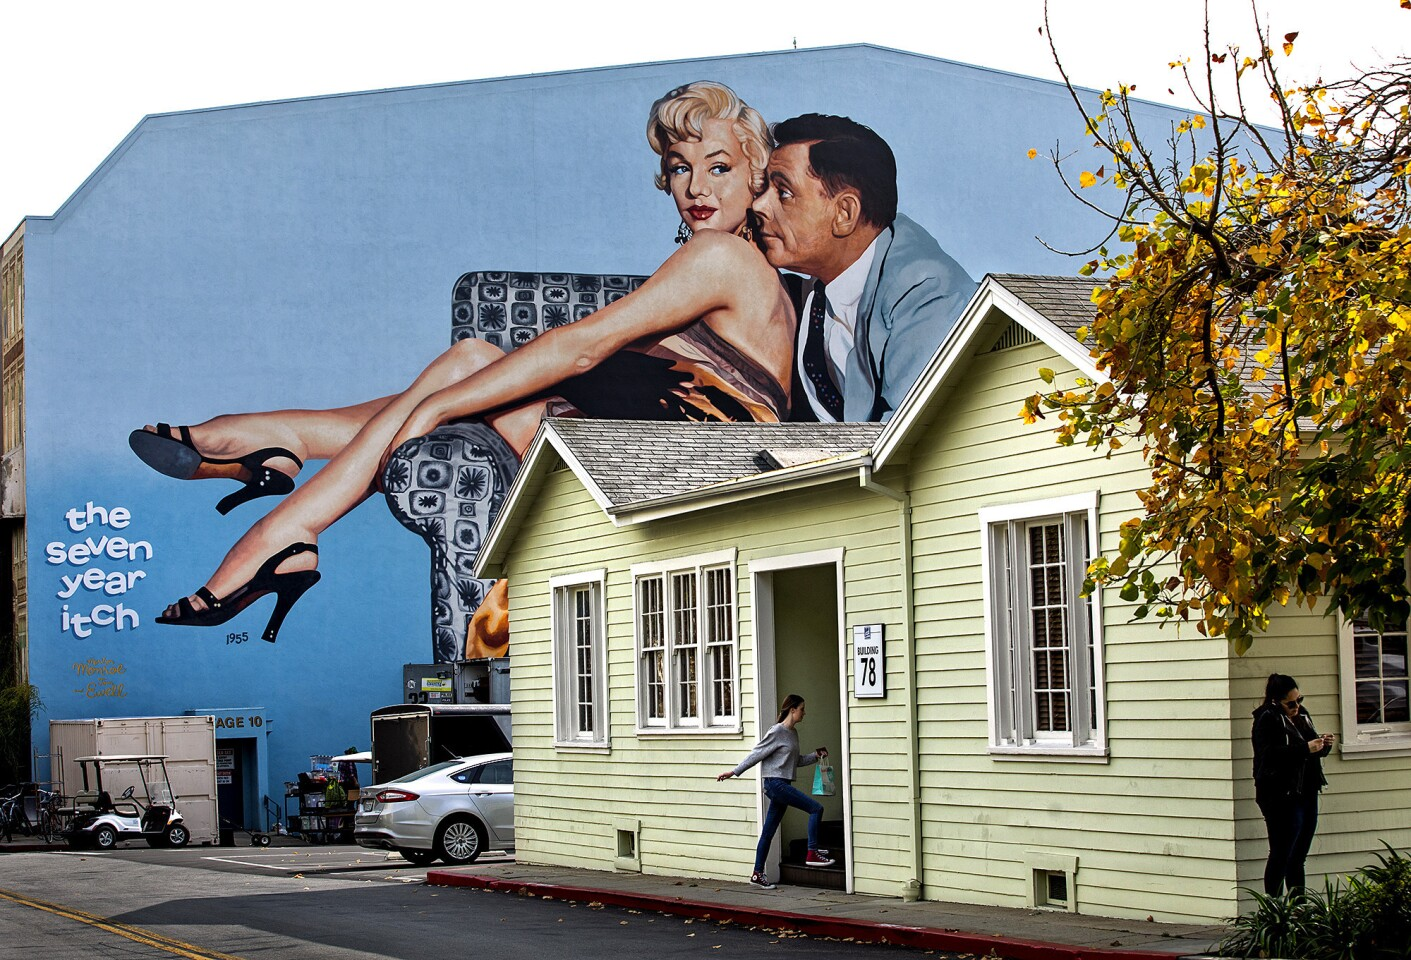 """An entire exterior wall of Stage 10 on the Fox Studios lot is covered by a mural depicting stars Marilyn Monroe and Tom Ewell from the 1955 comedy """"The Seven Year Itch."""""""